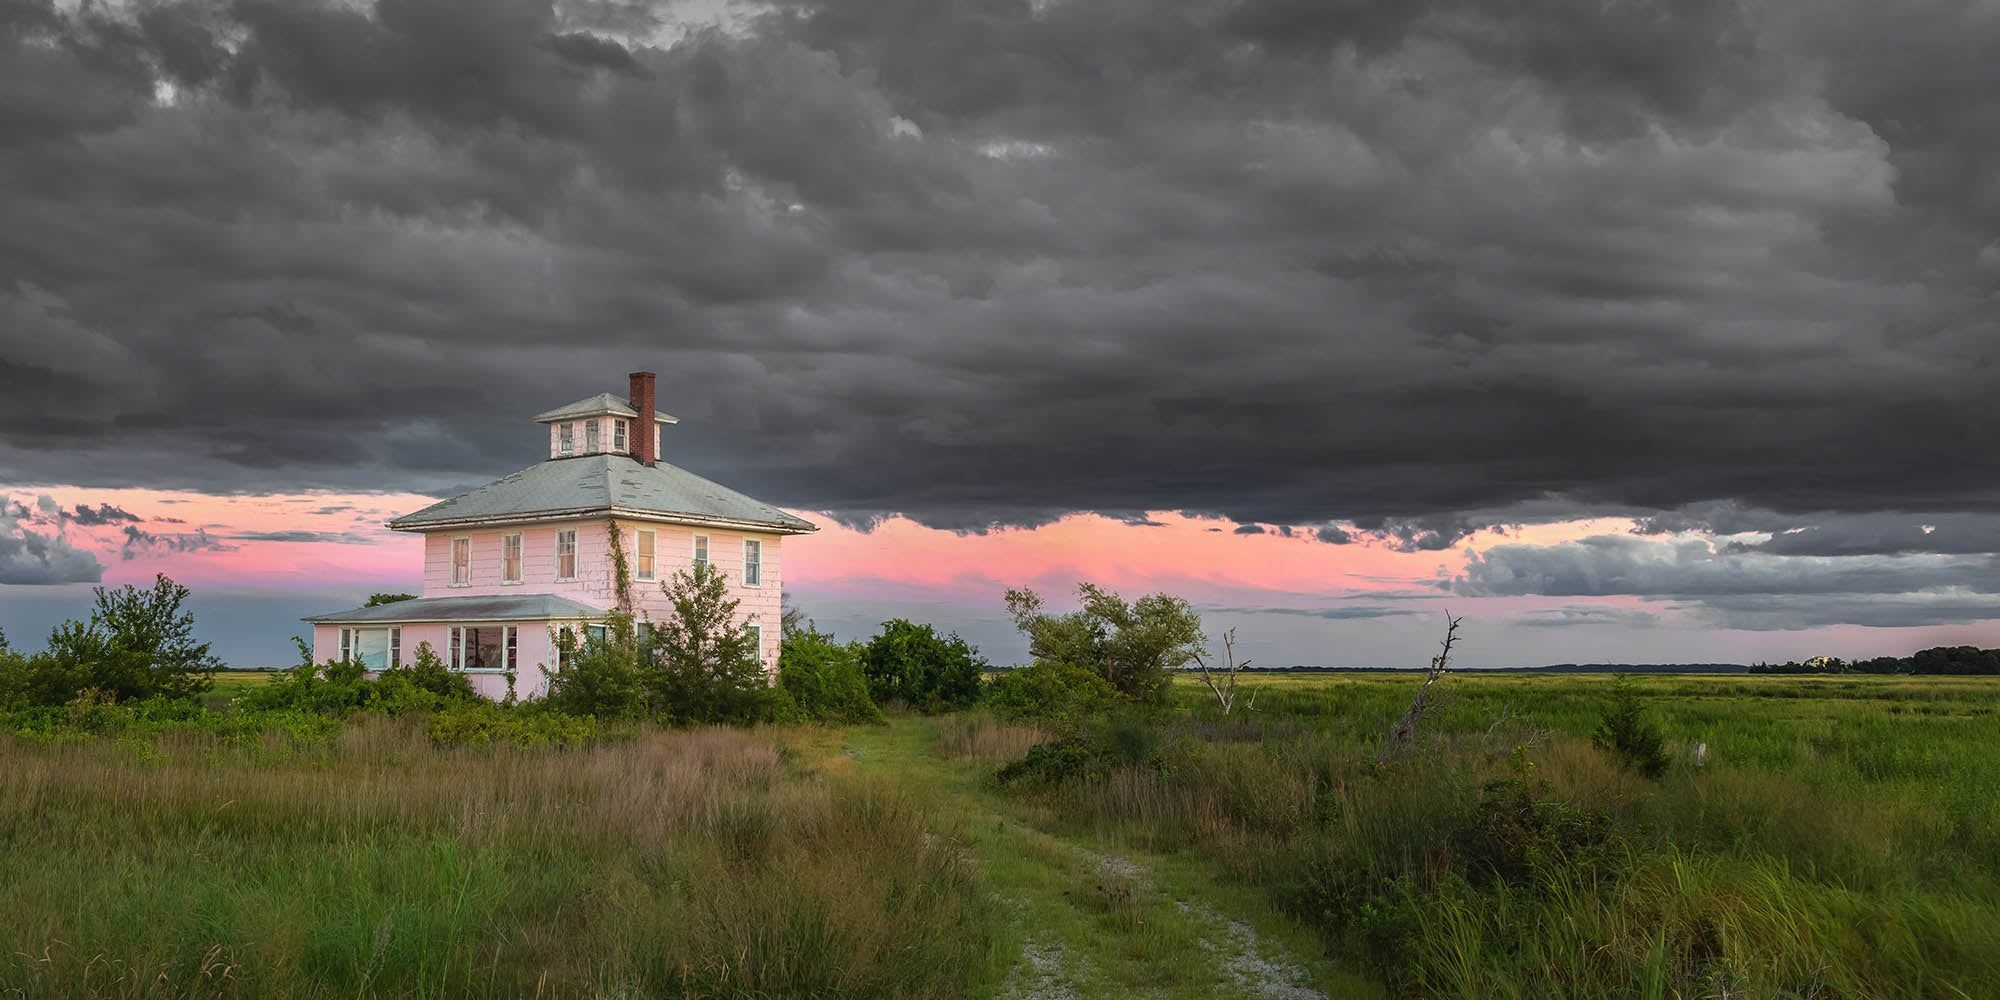 Landscape wall art photography of the iconic Plum Island pink house during a summer storm